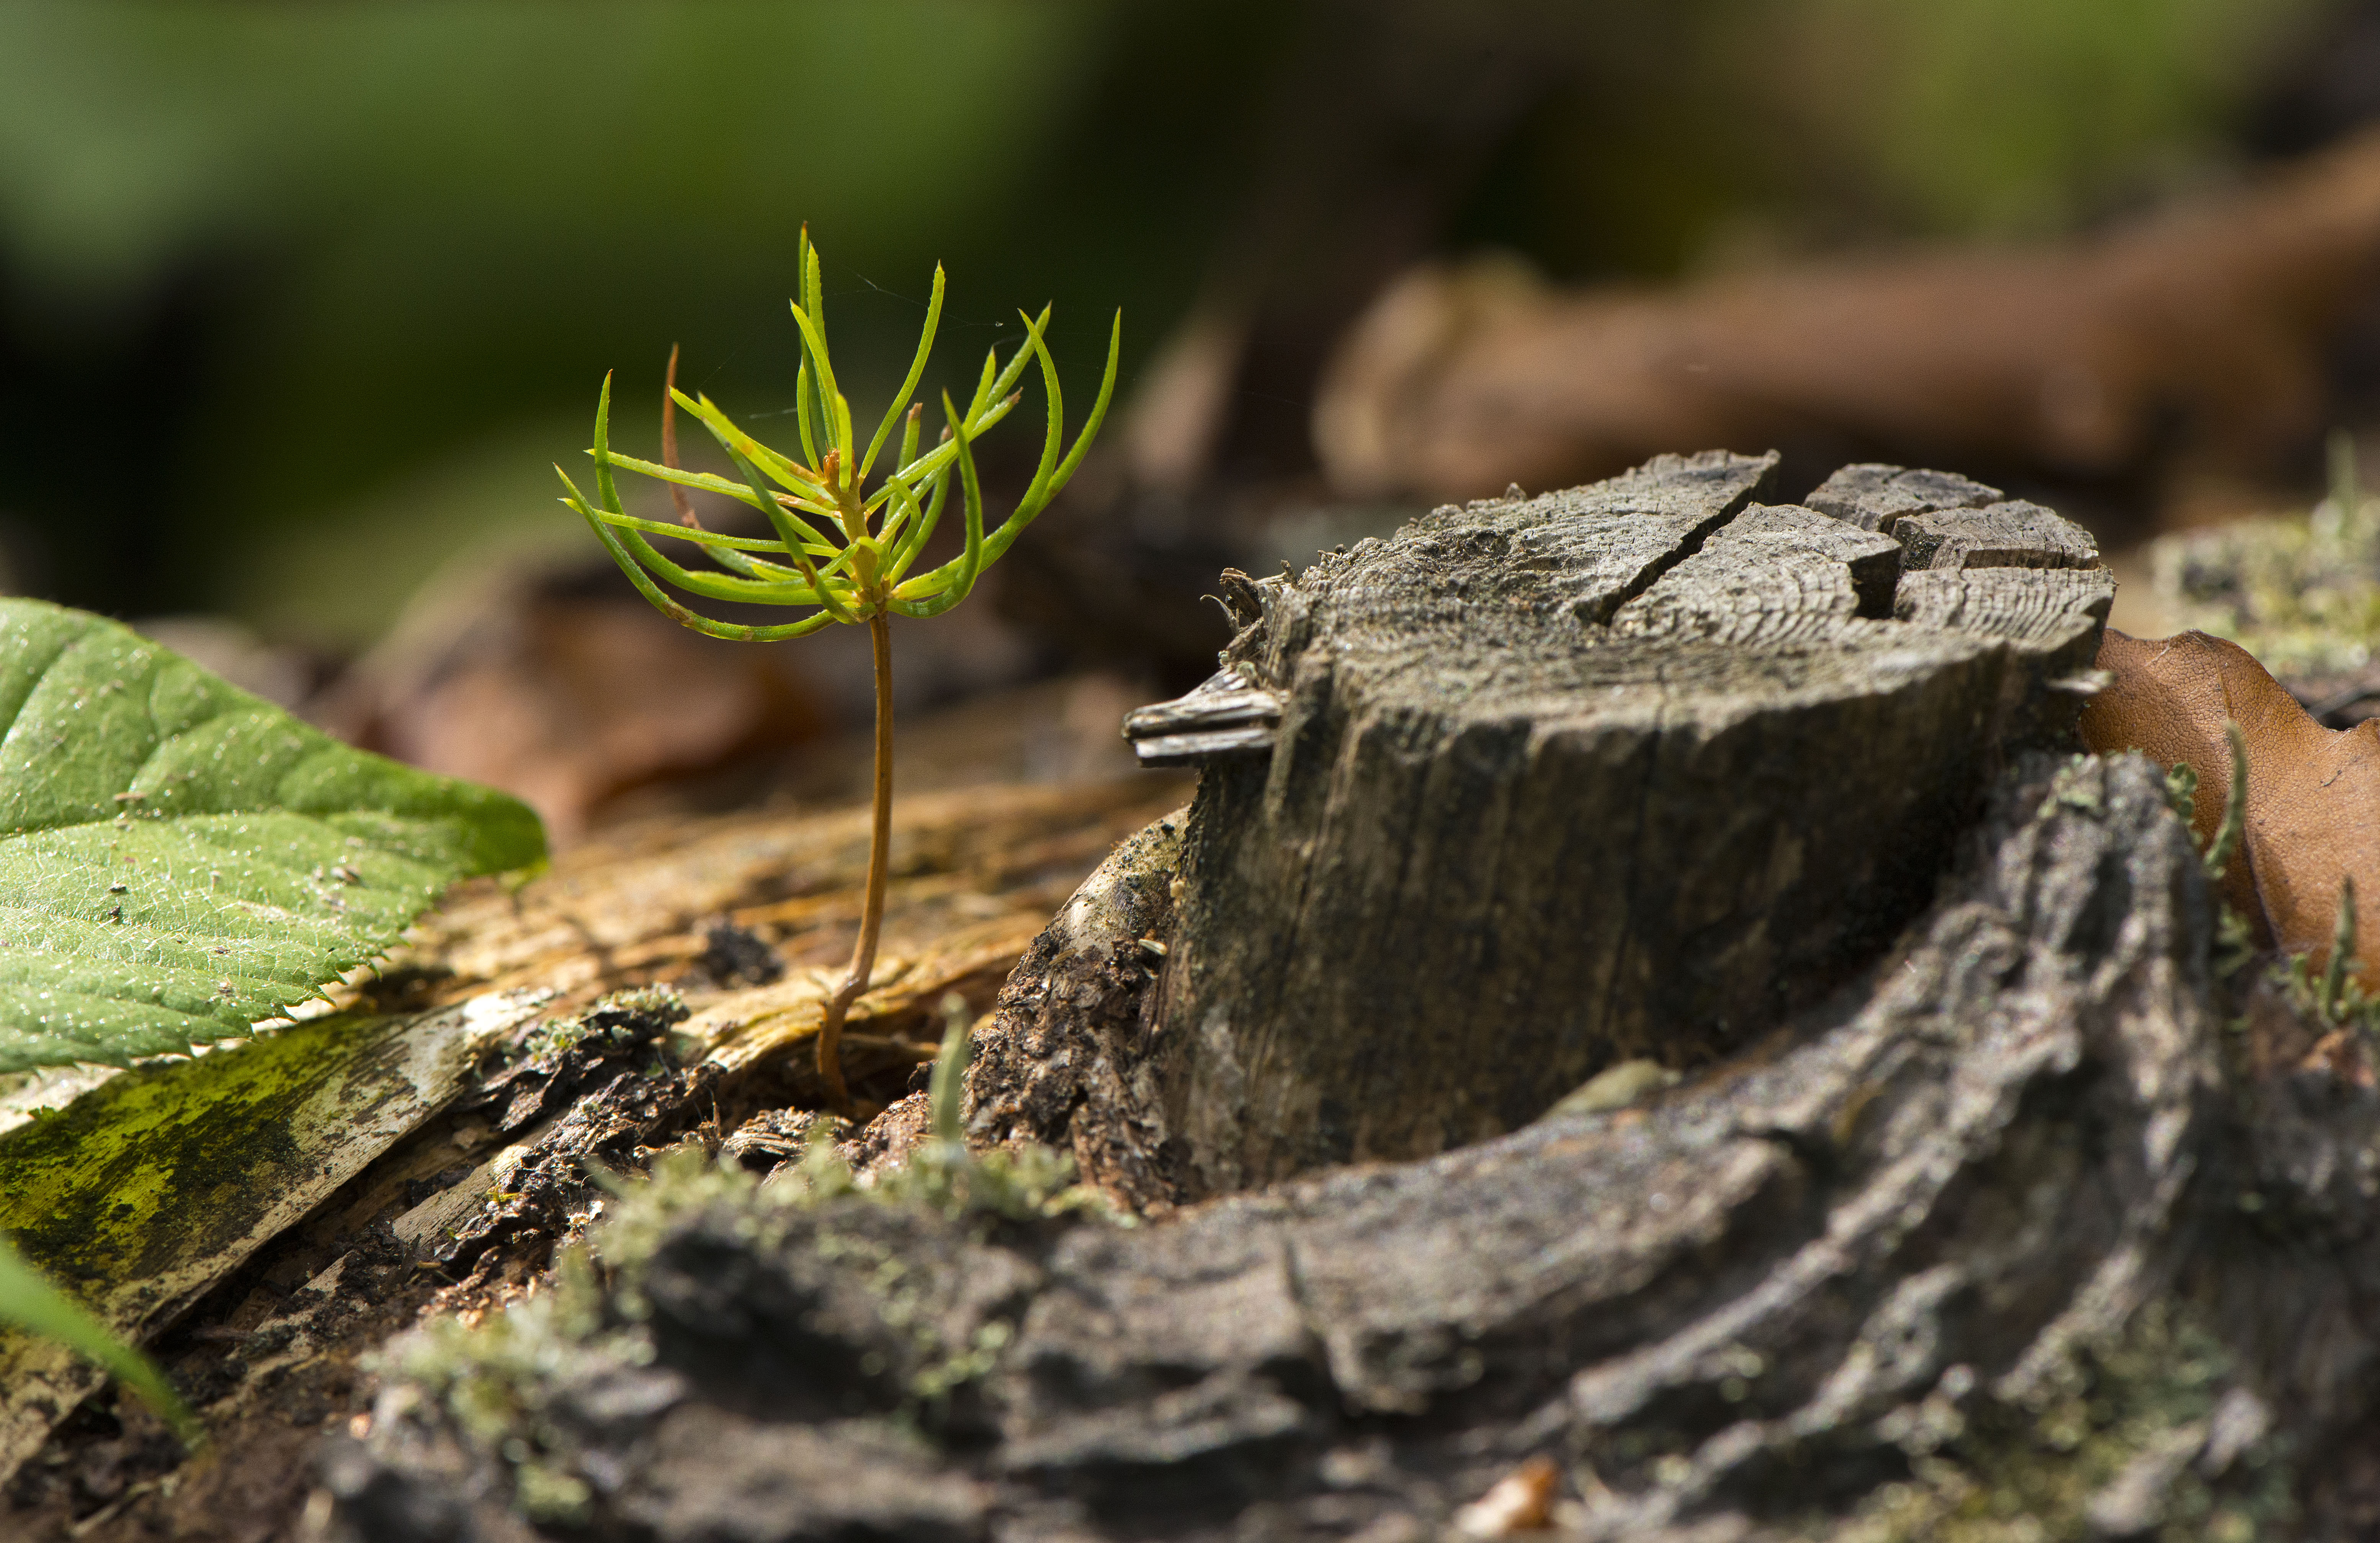 A young spruce germinating on a dead one in the Bayerischer Wald NP, Germany. © Daniel Rosengren